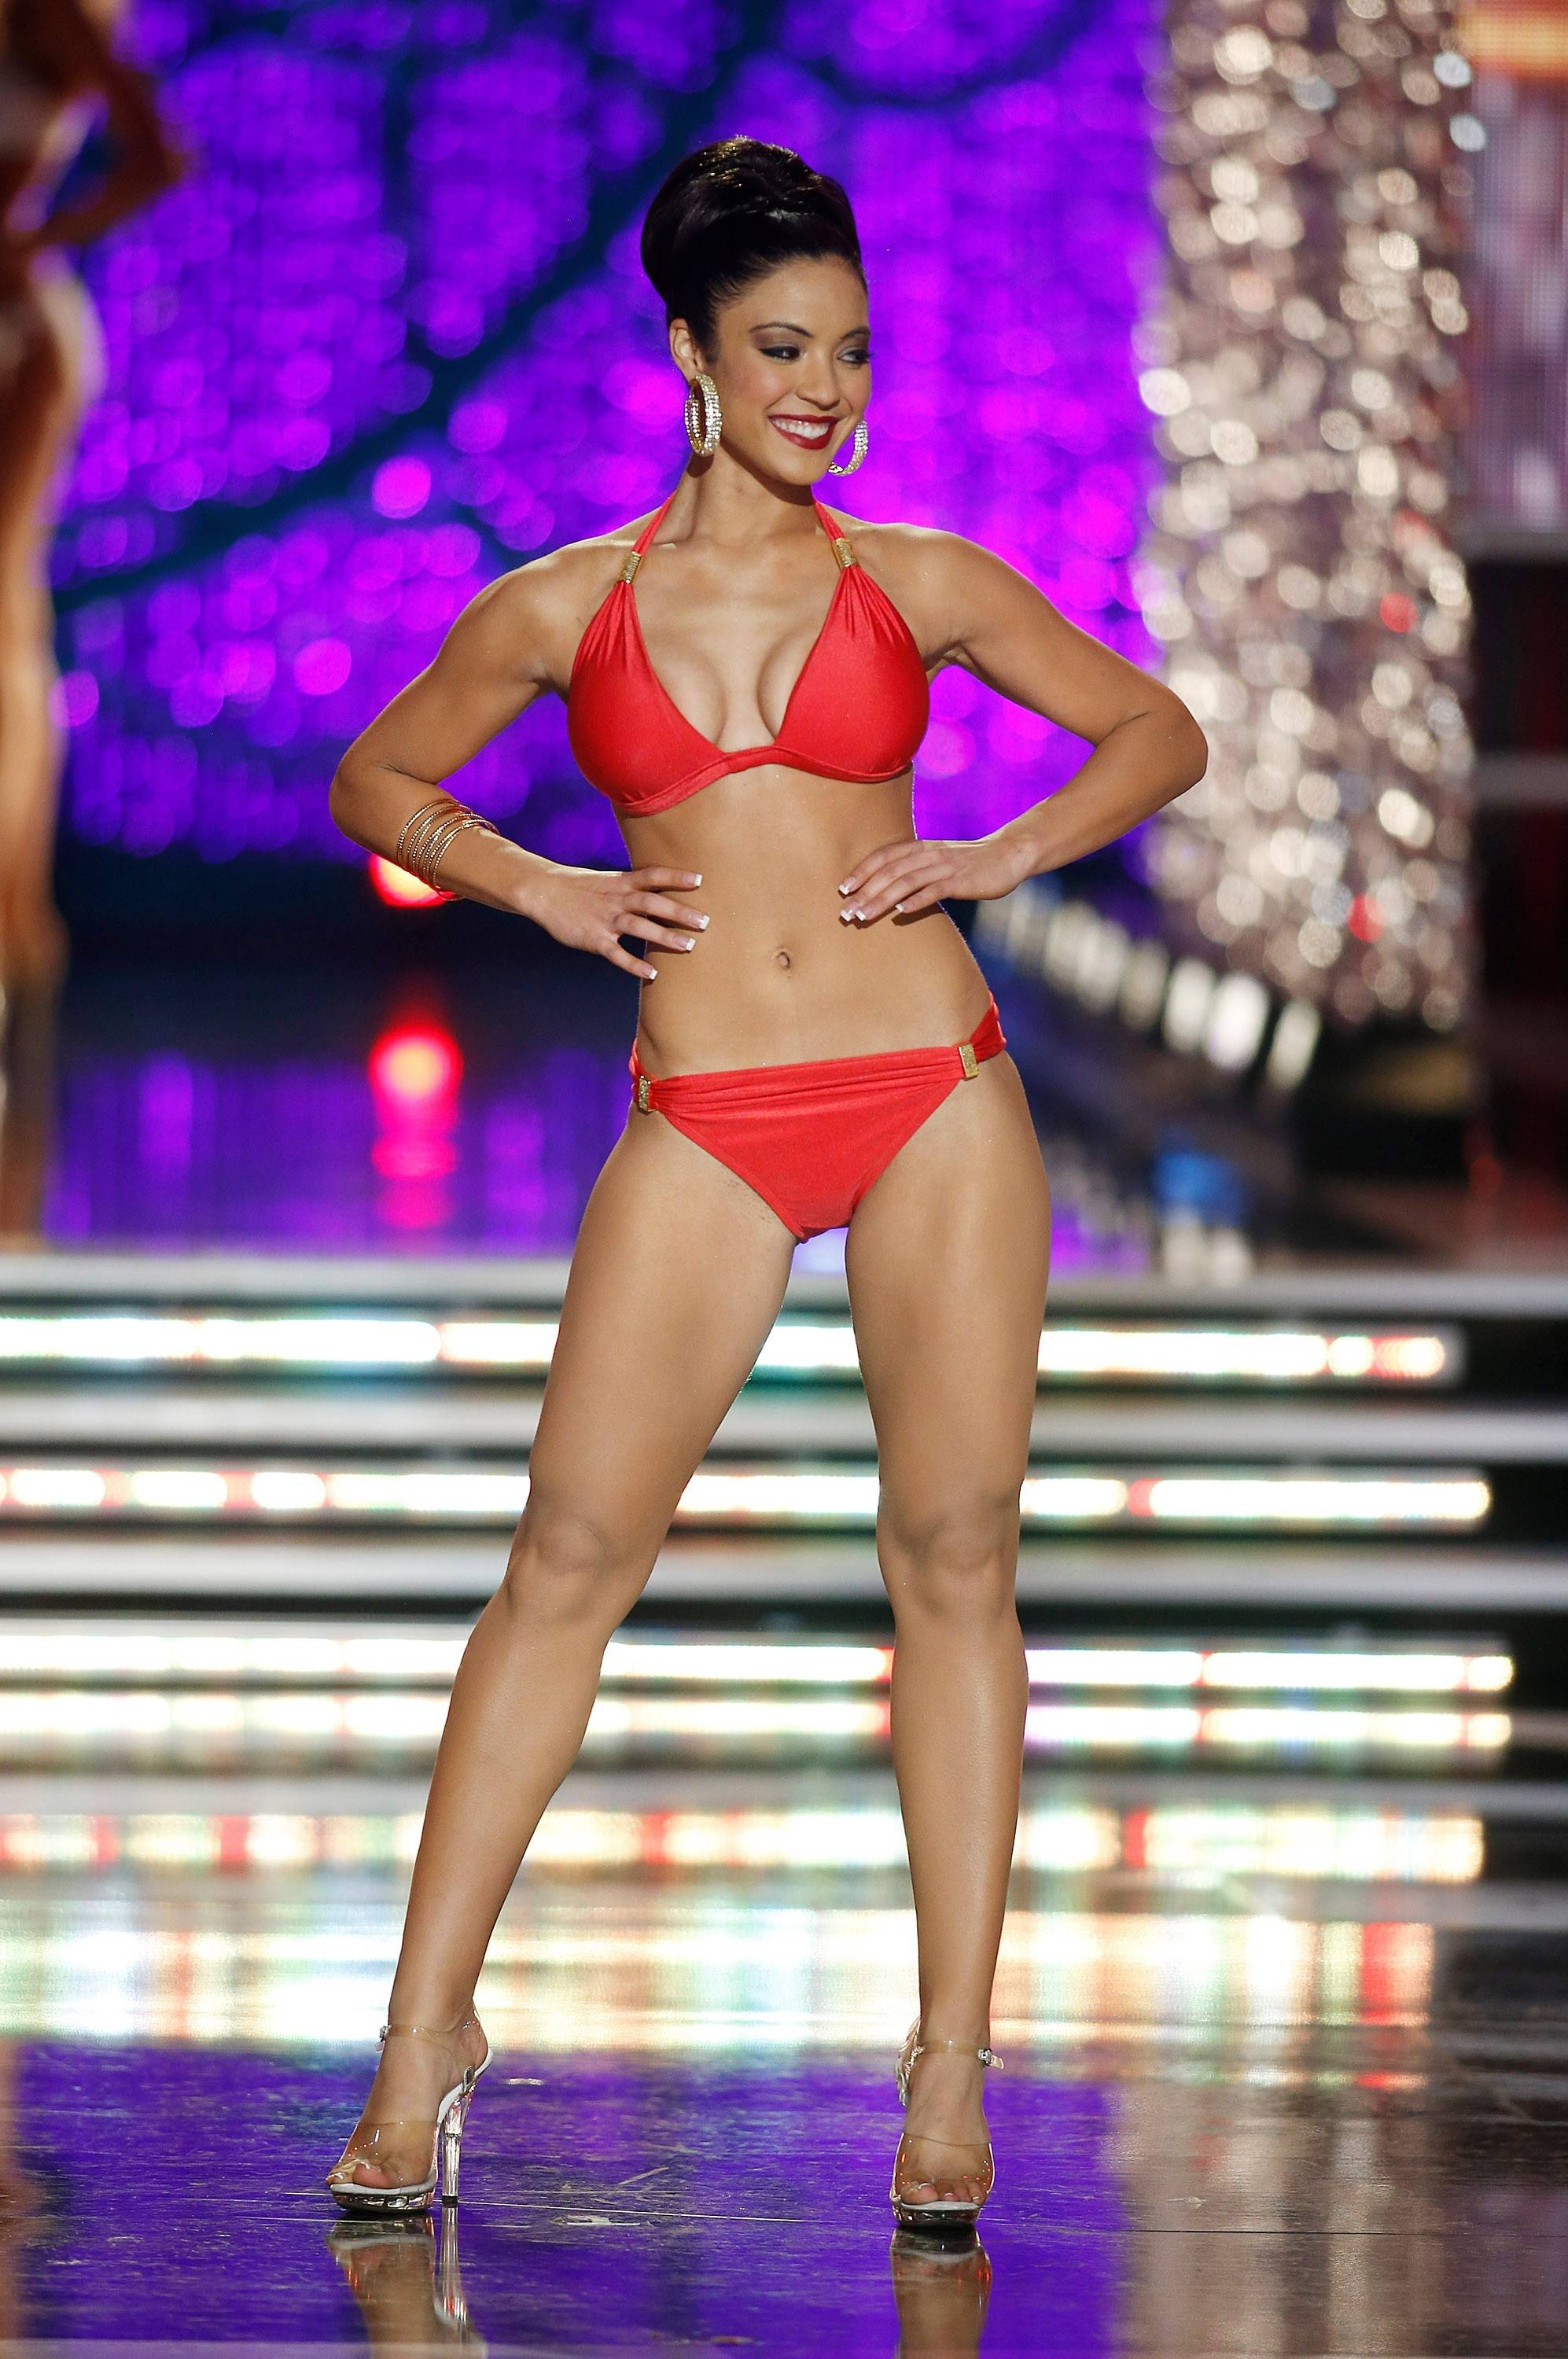 Miss Iowa Mariah Cary competes in the swimsuit portion of the Miss America 2013 pageant on Saturday, Jan. 12, 2013, in Las Vegas.